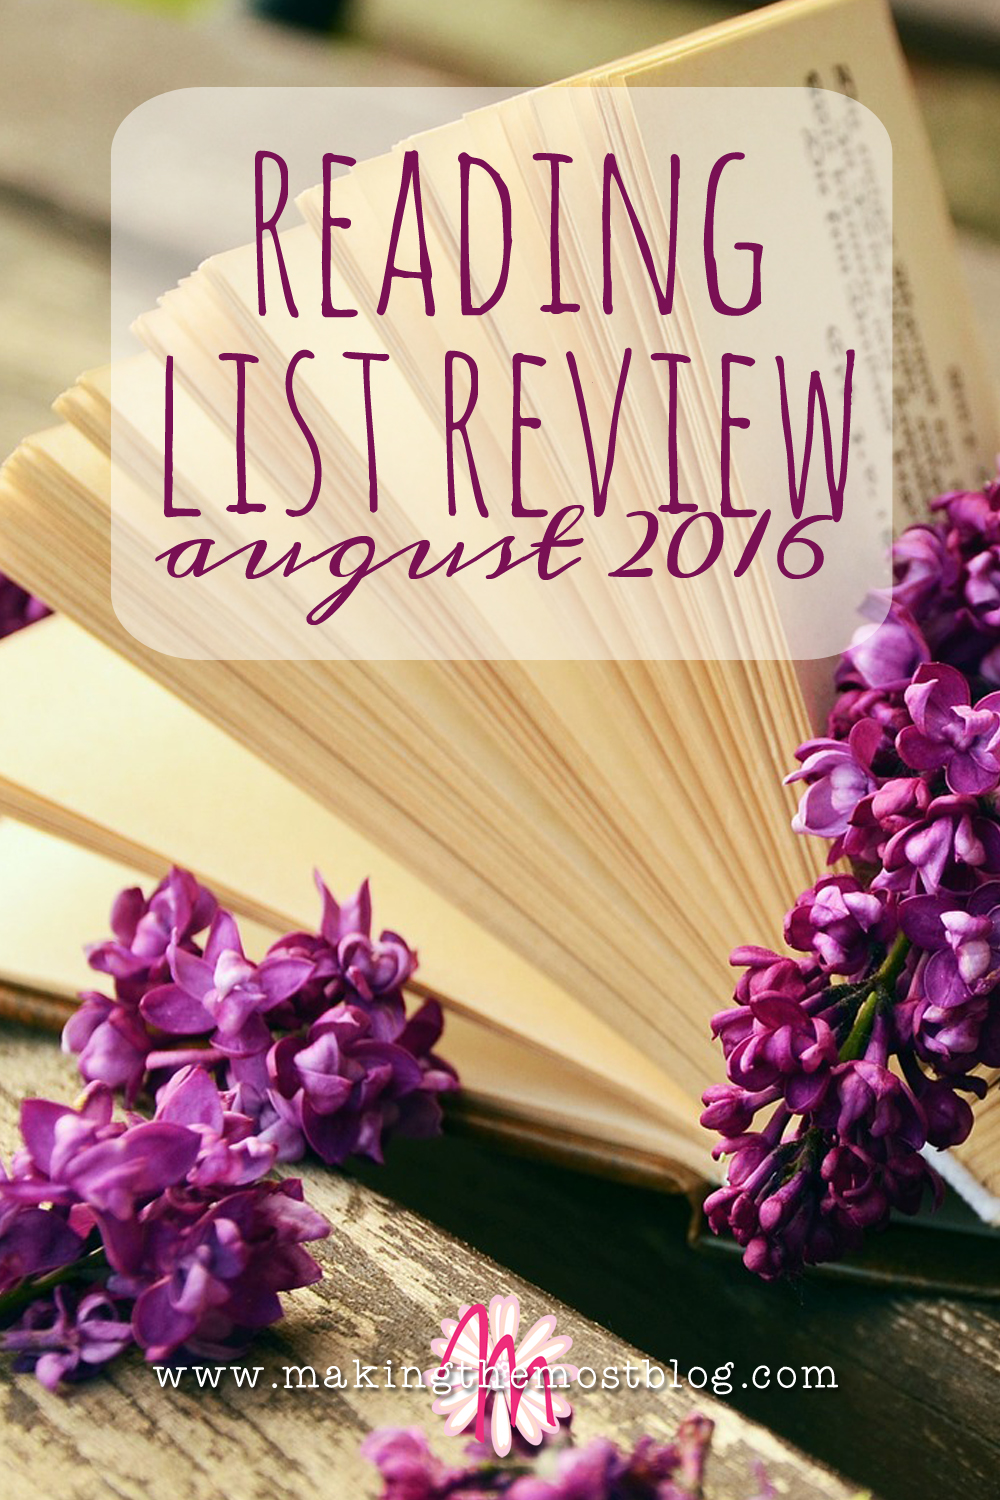 Reading List Review: August 2016 | Making the Most Blog